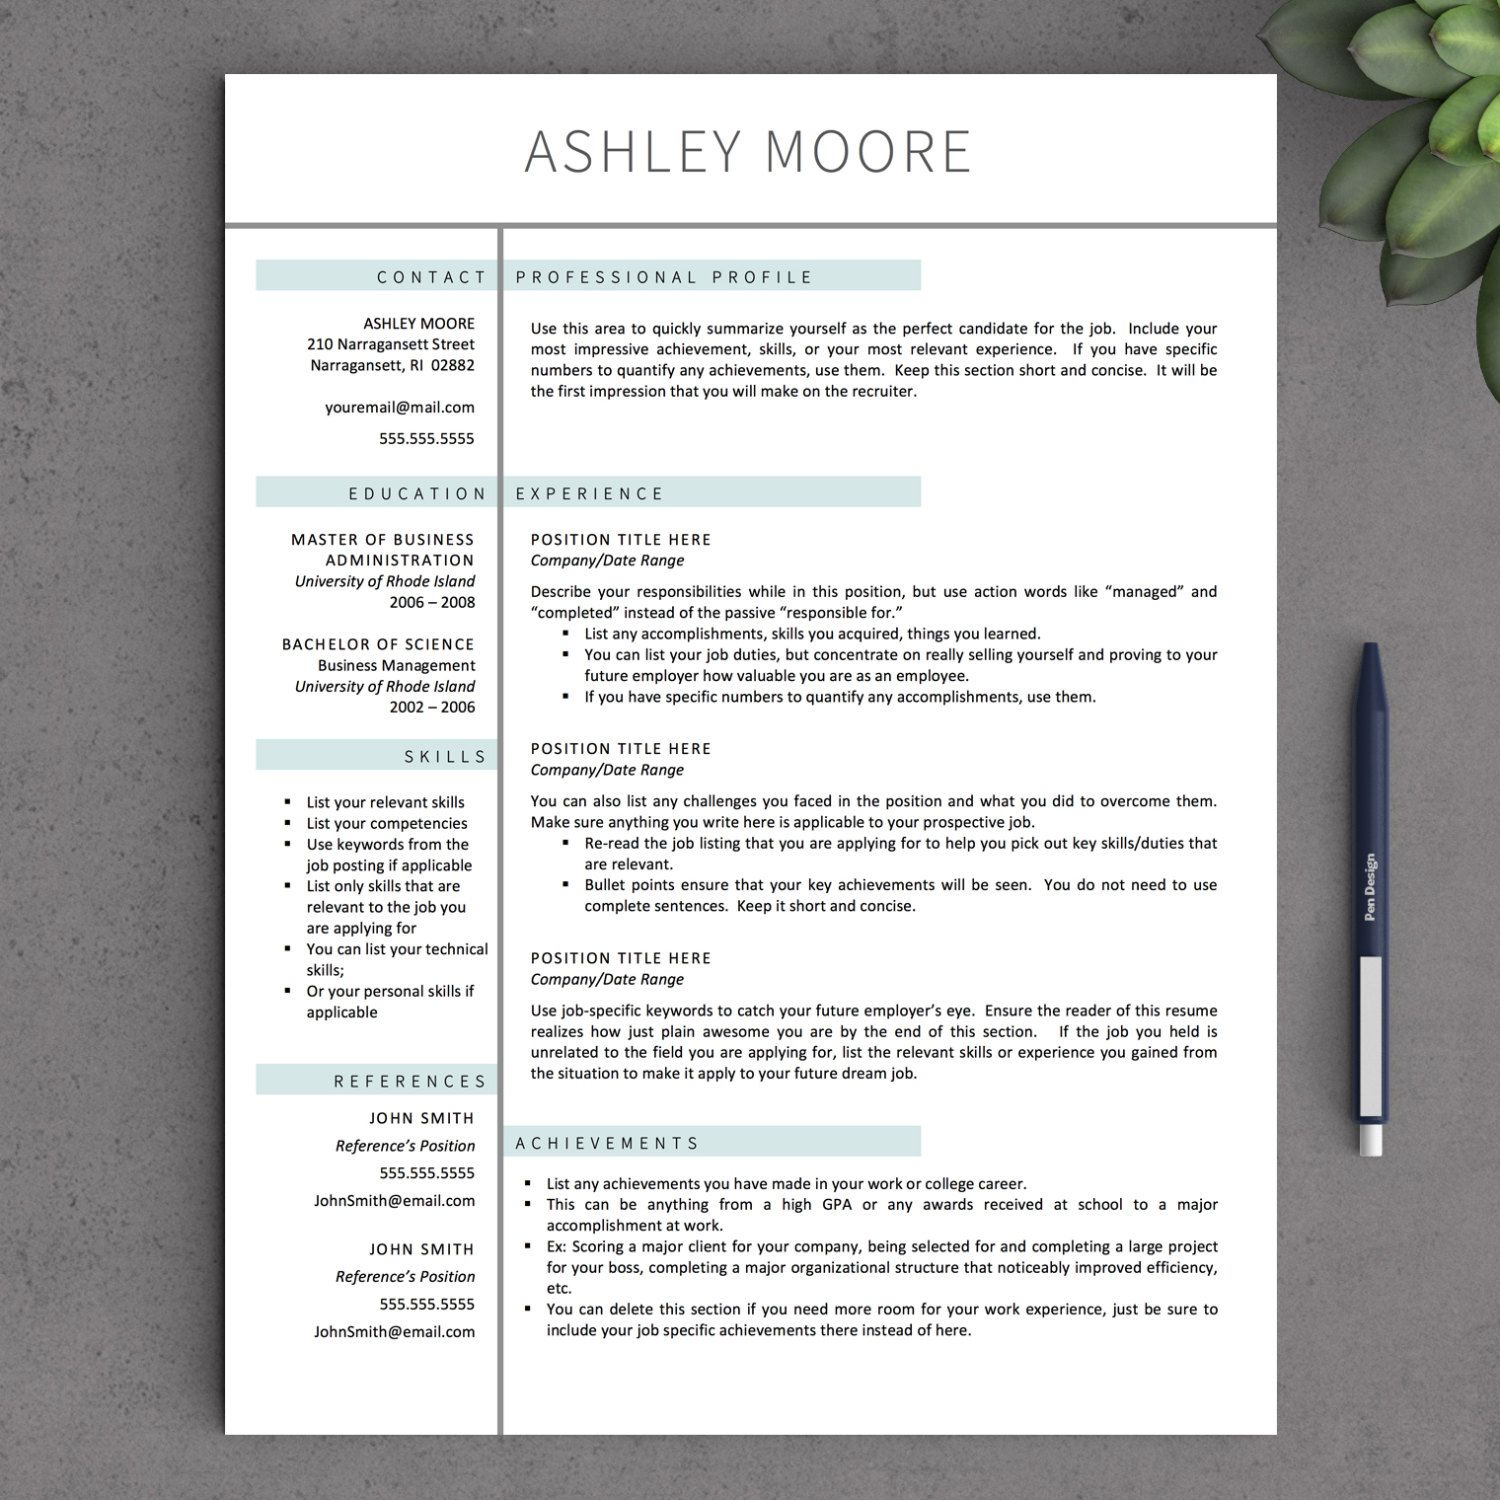 Modern Resume CV Template 1-3 Page Simple Resume Mac | Etsy